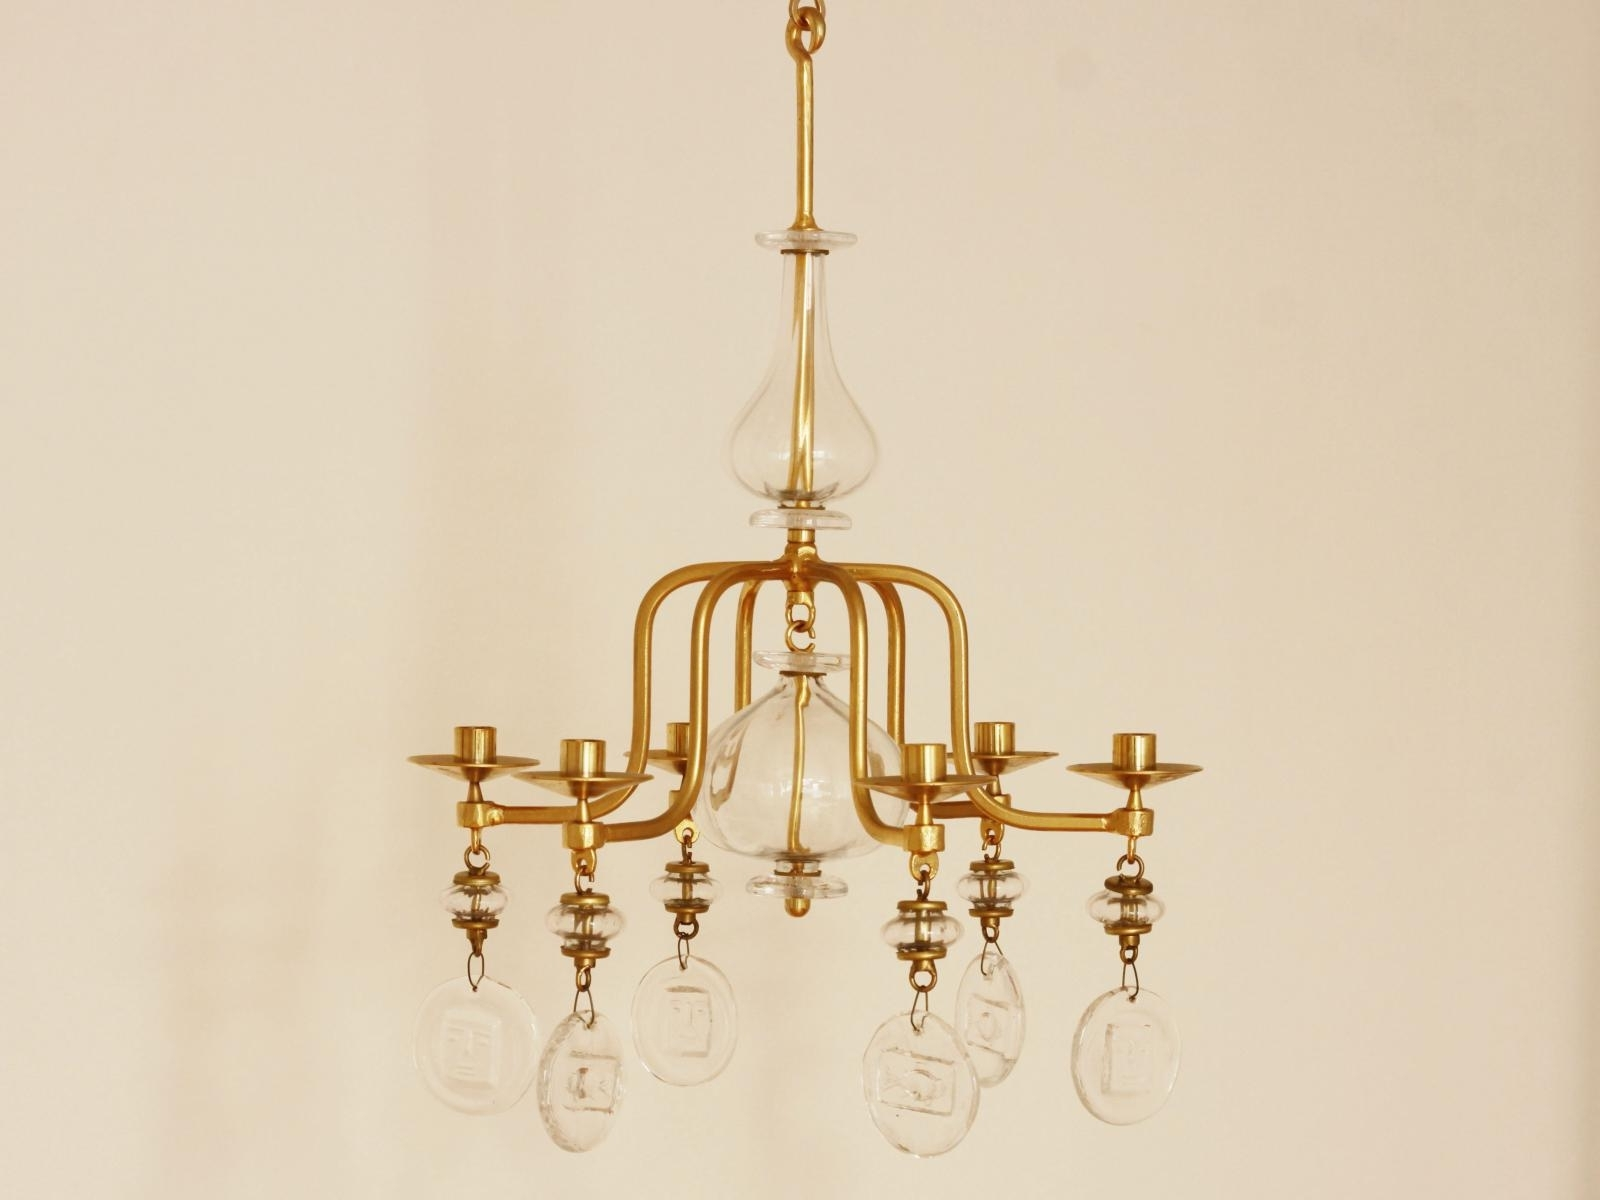 Popular Candle Chandelier Within Large Mid Century Gilded Iron & Glass Candle Chandeliererik (View 6 of 20)